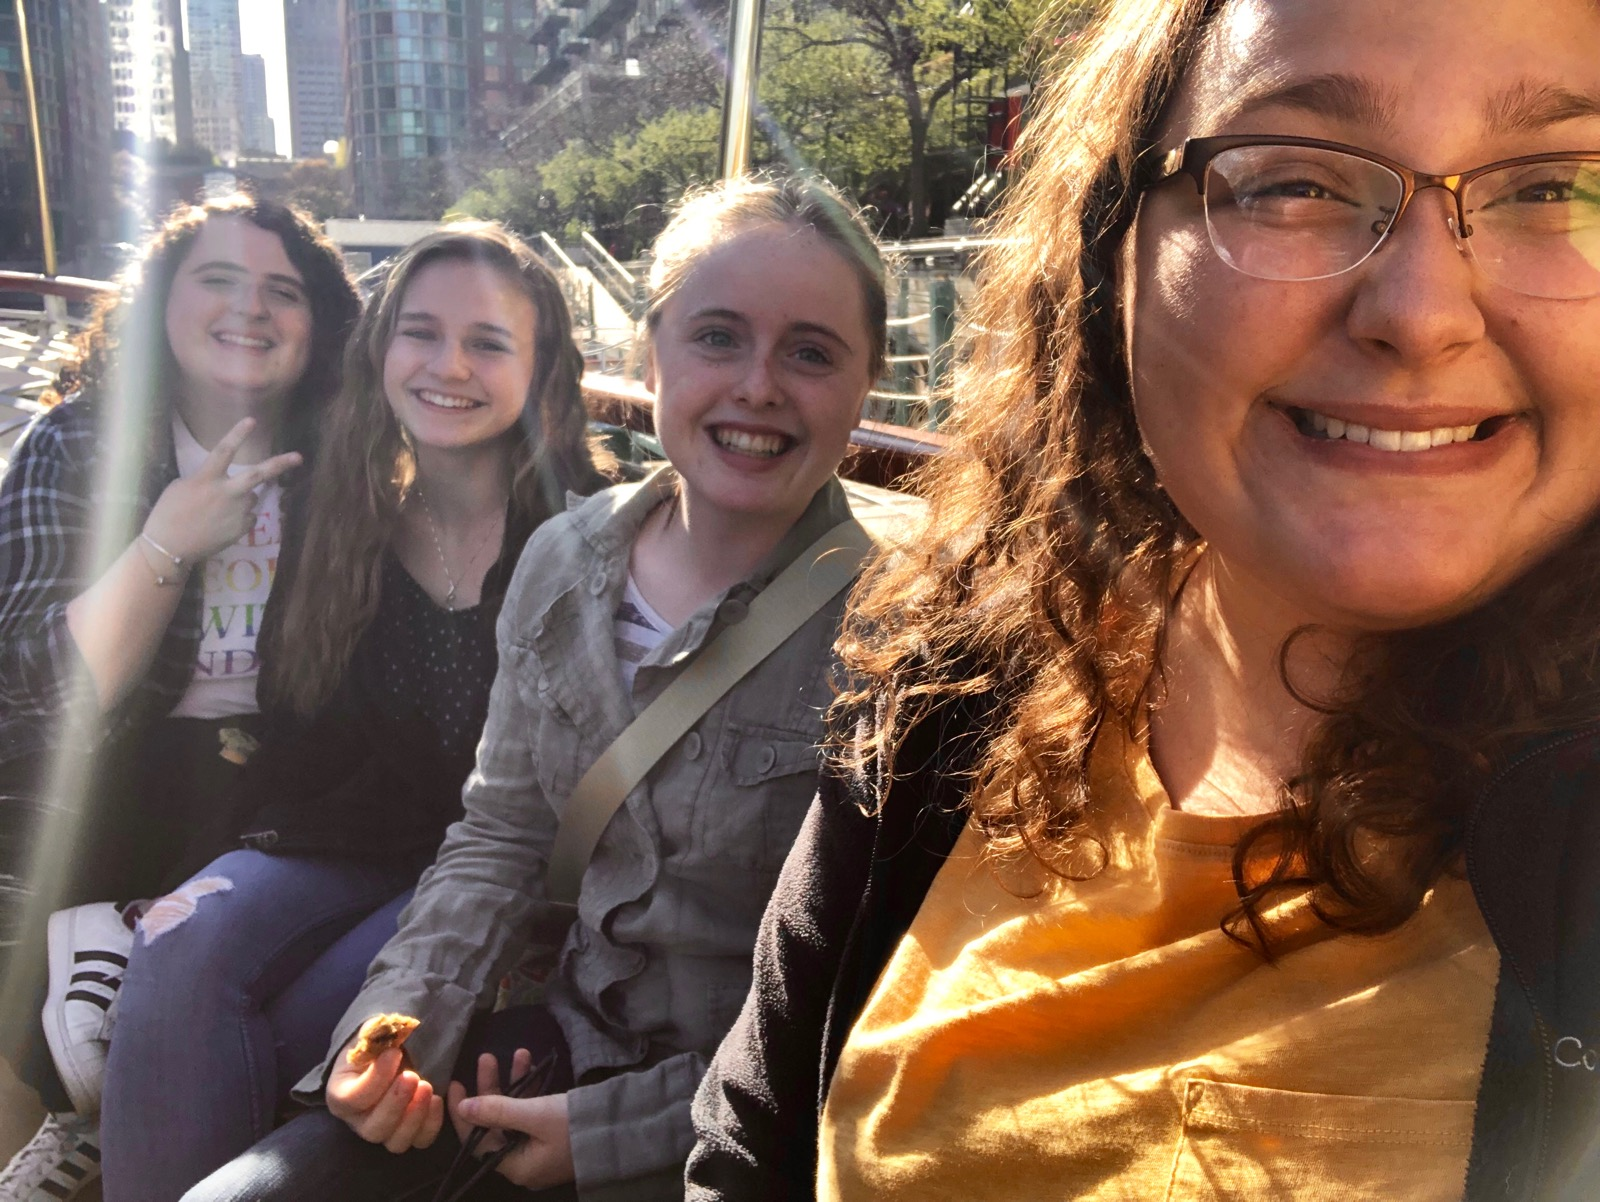 Four young women smiling while riding a water taxi, downtown Chicago